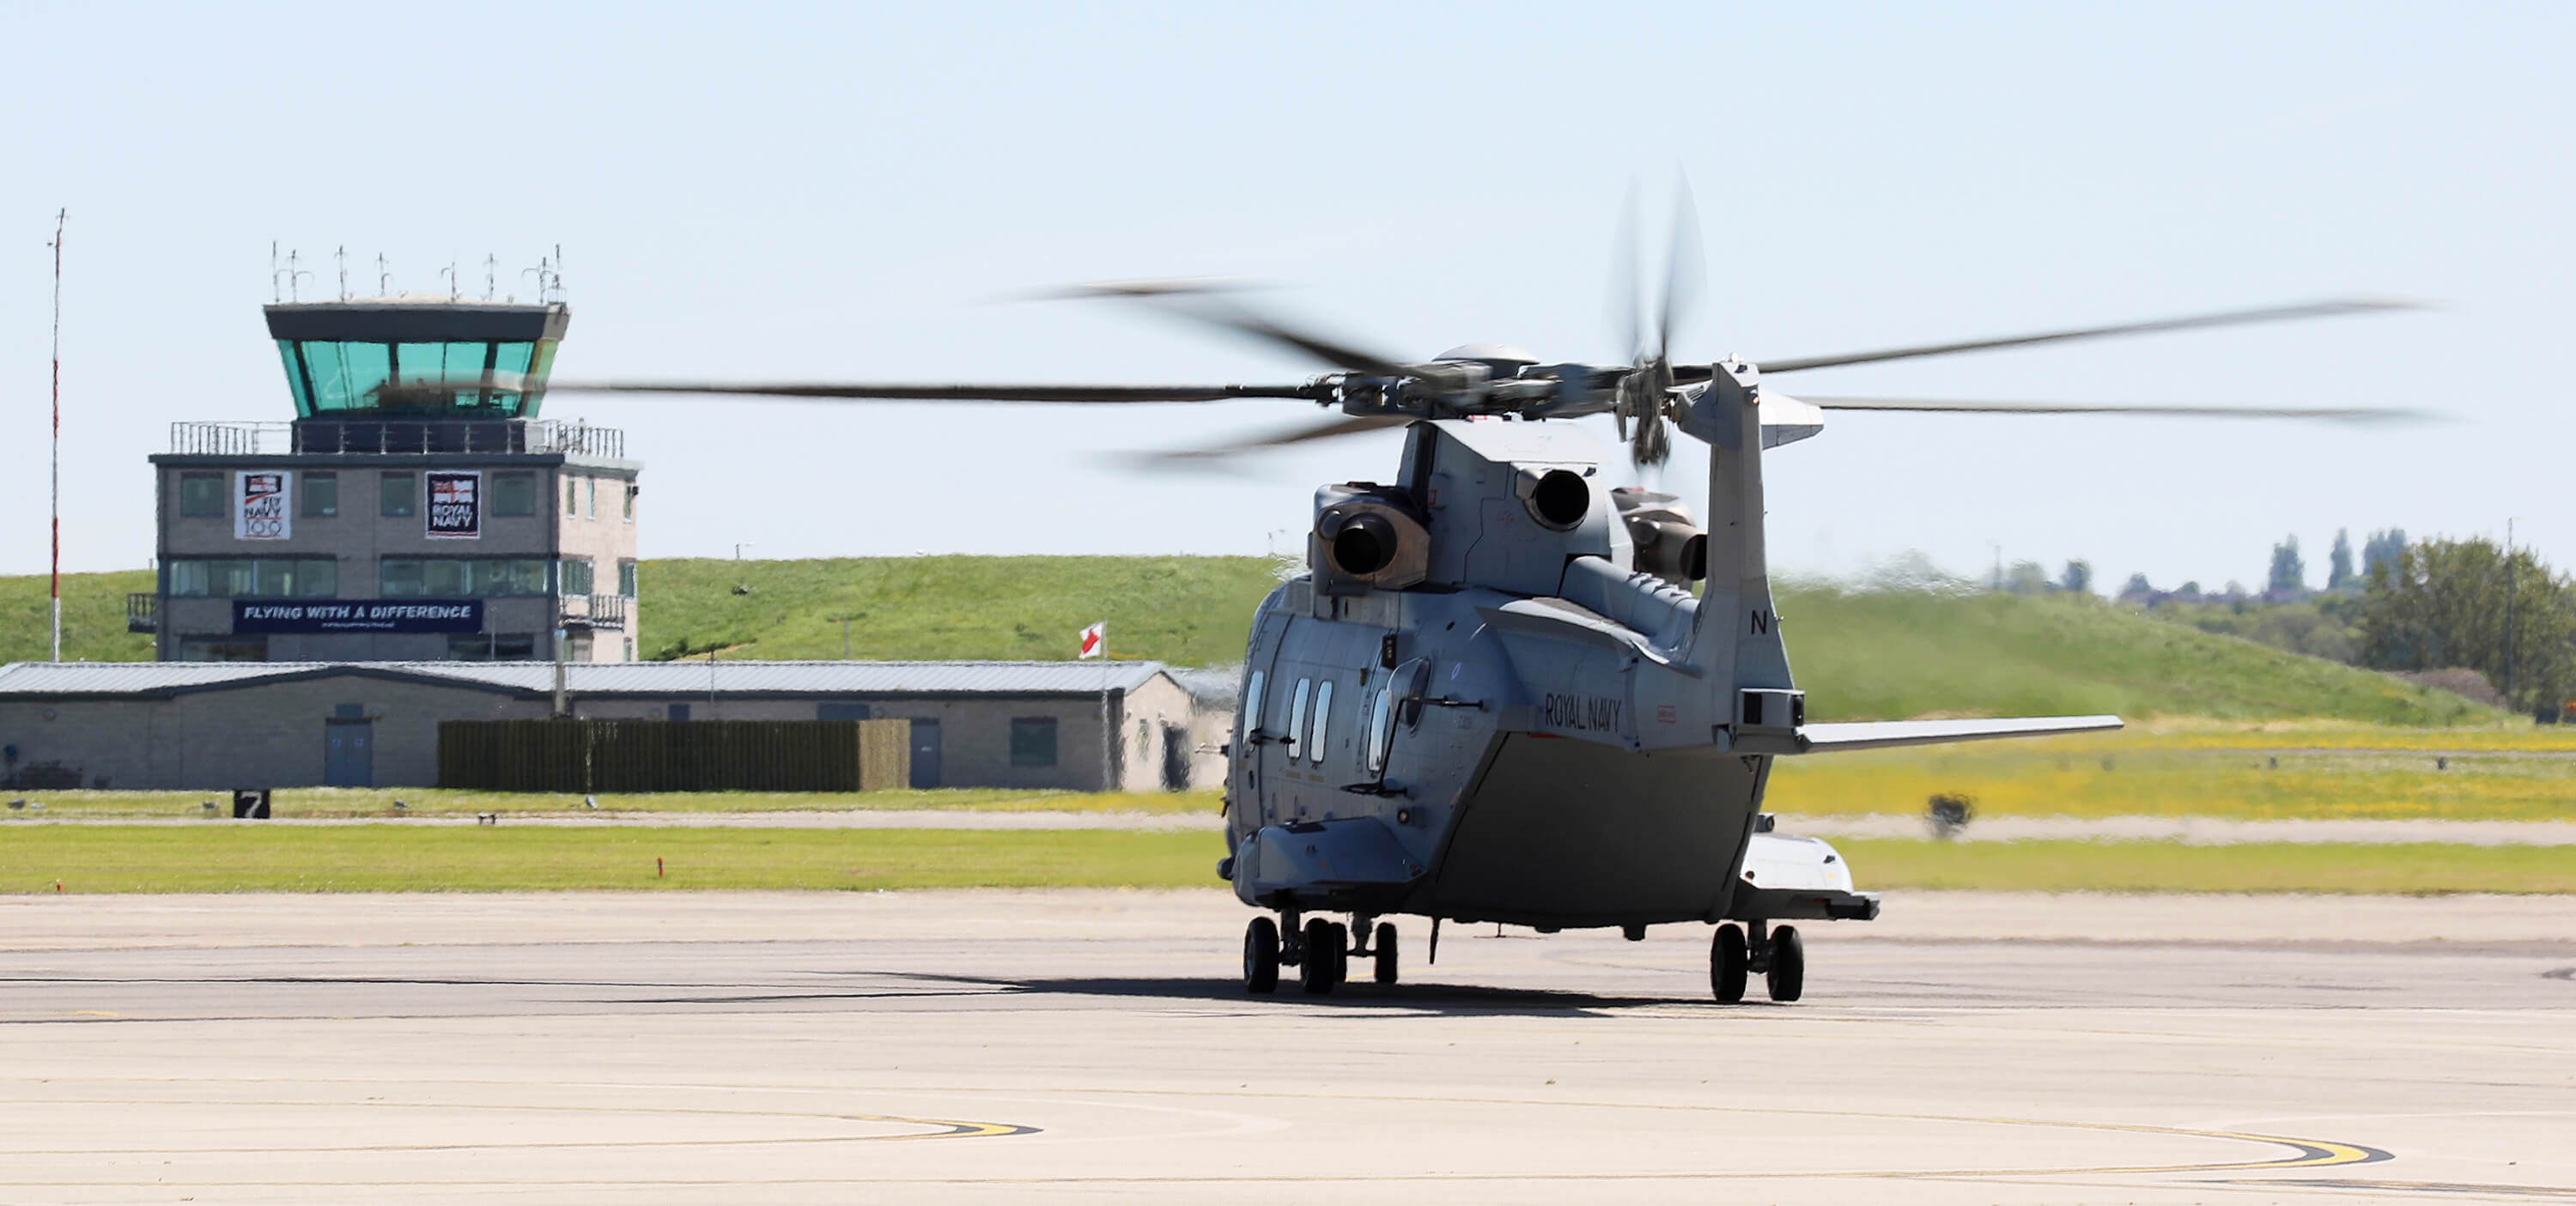 The Merlin Mk4 on RNAS Yeovilton's airfield.